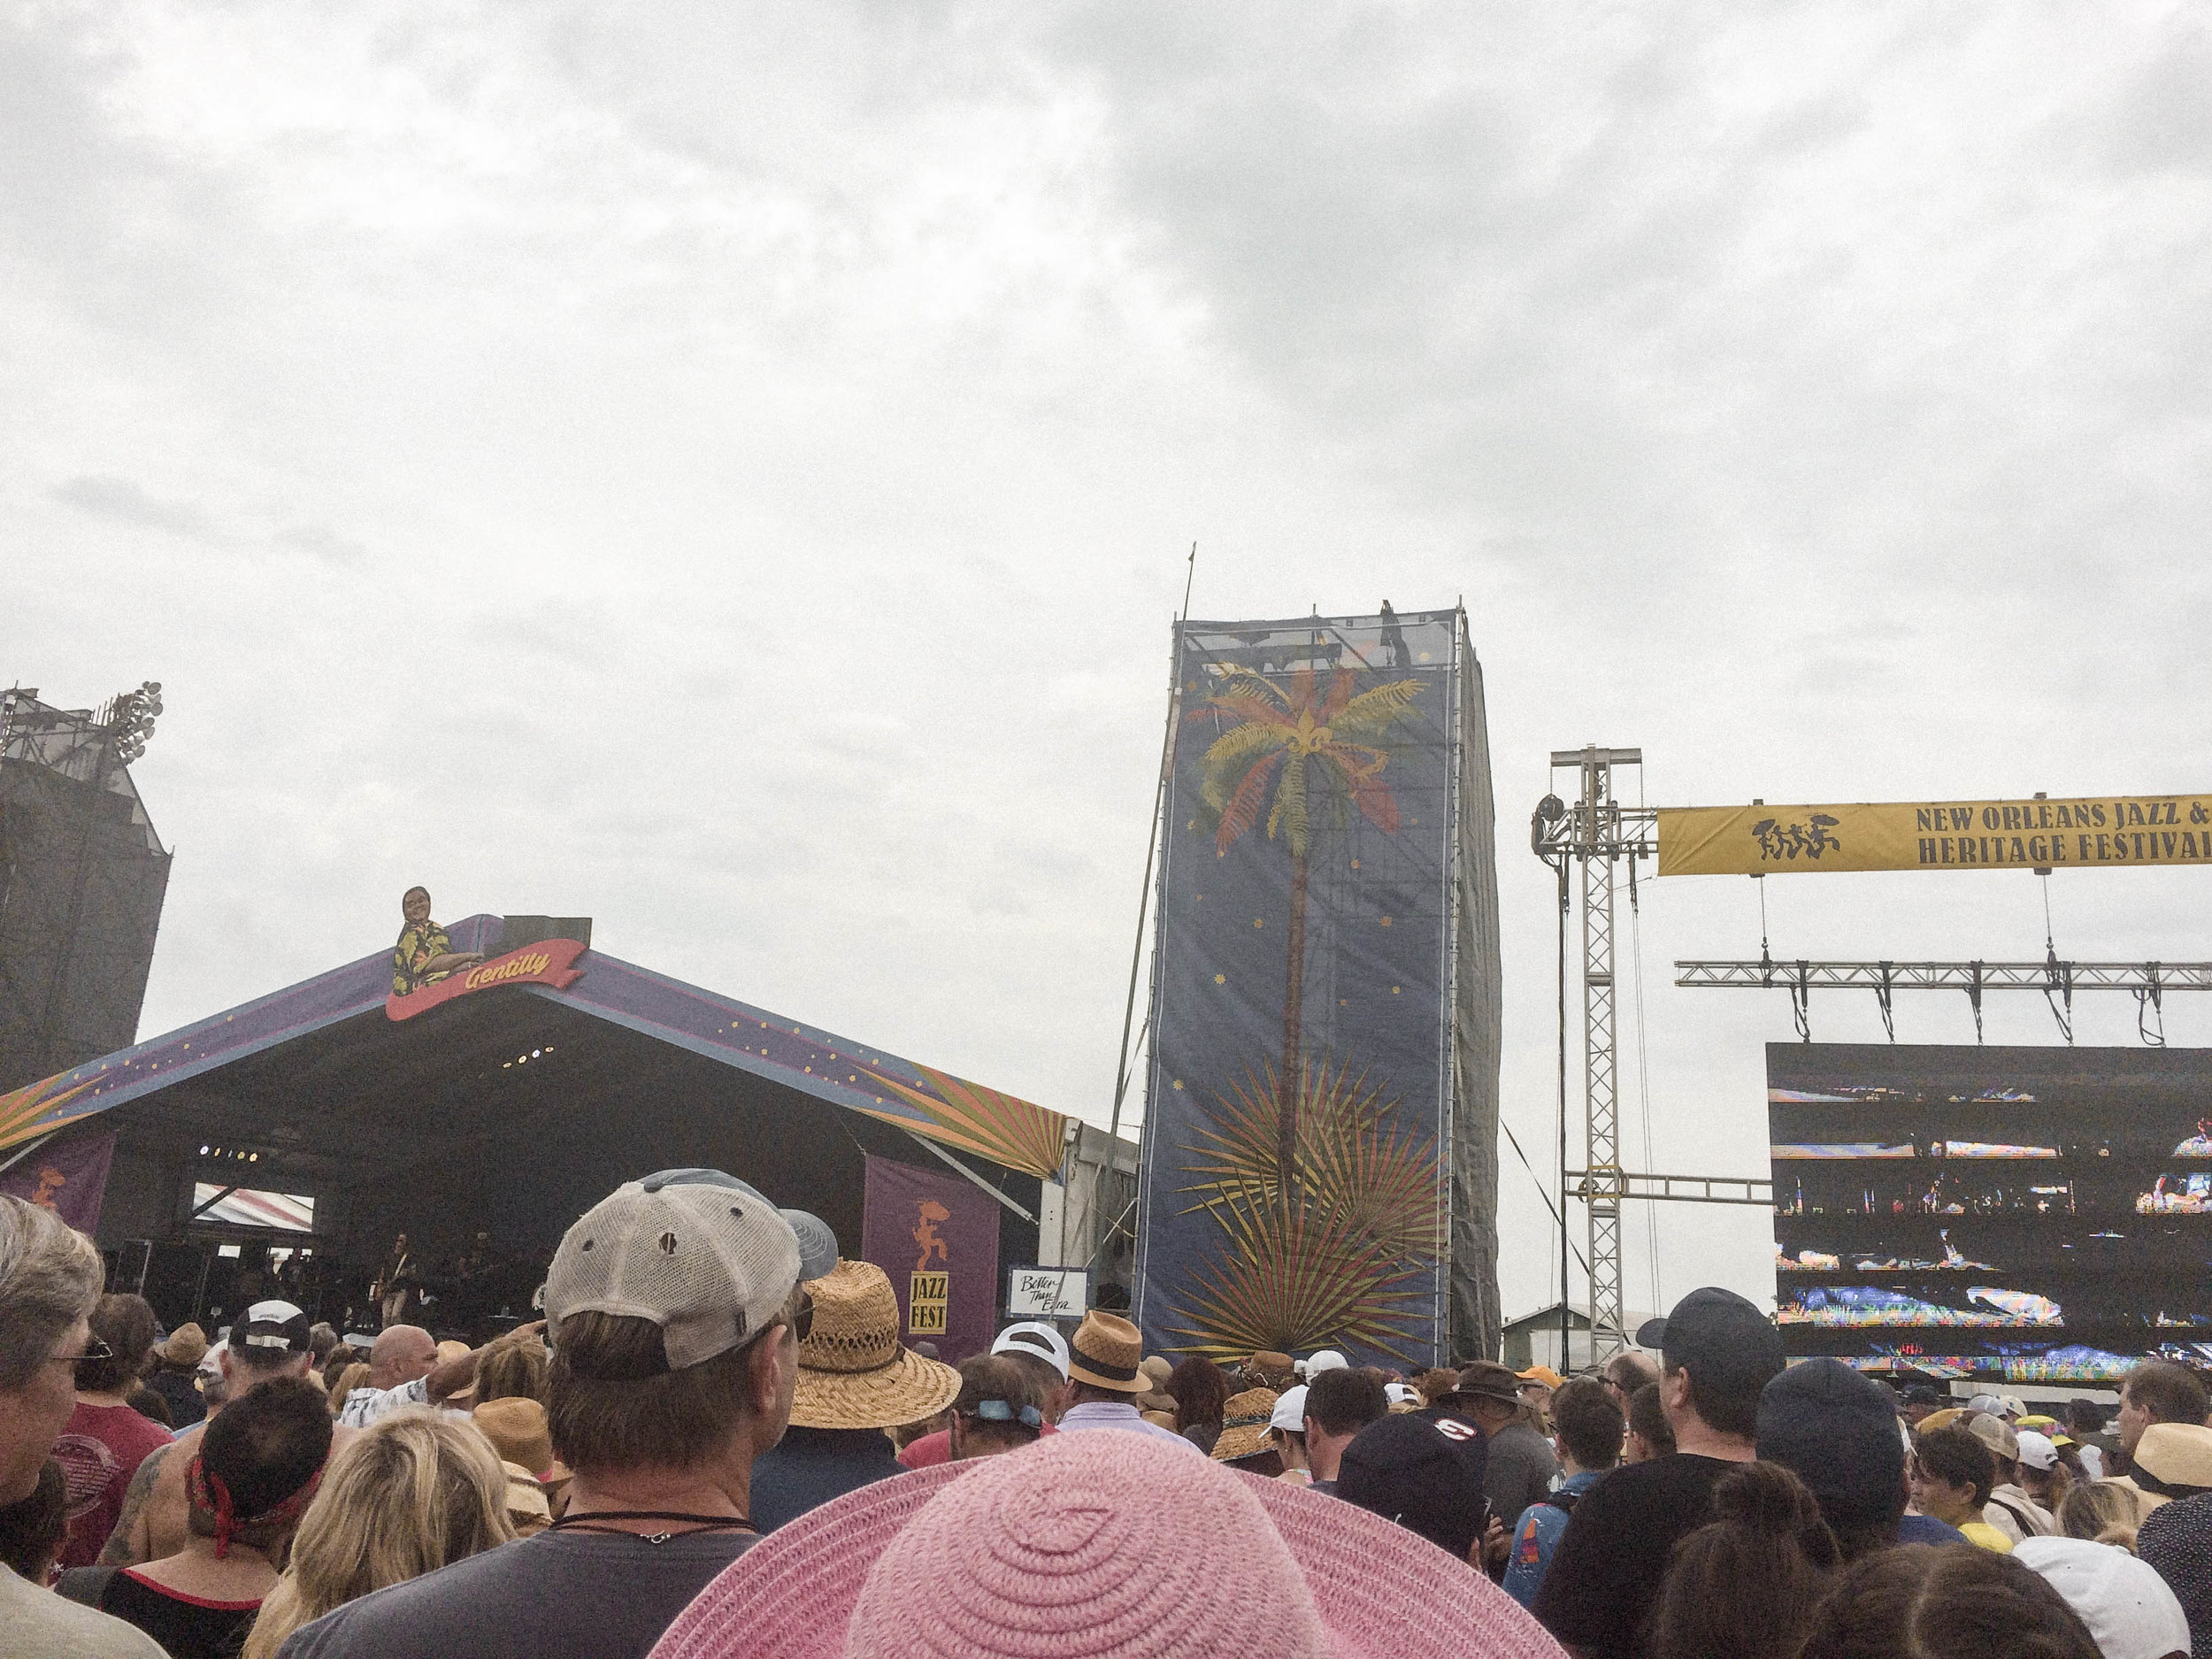 If you've ever held the belief that travel is expensive or solo travel is dangerous and scary - but have secretly wanted to do both - this post is for you!  My solo trip to New Orleans was the Abundant Result of flipping the script on those limiting beliefs! [Better Than Ezra at Jazz Fest in New Orleans]